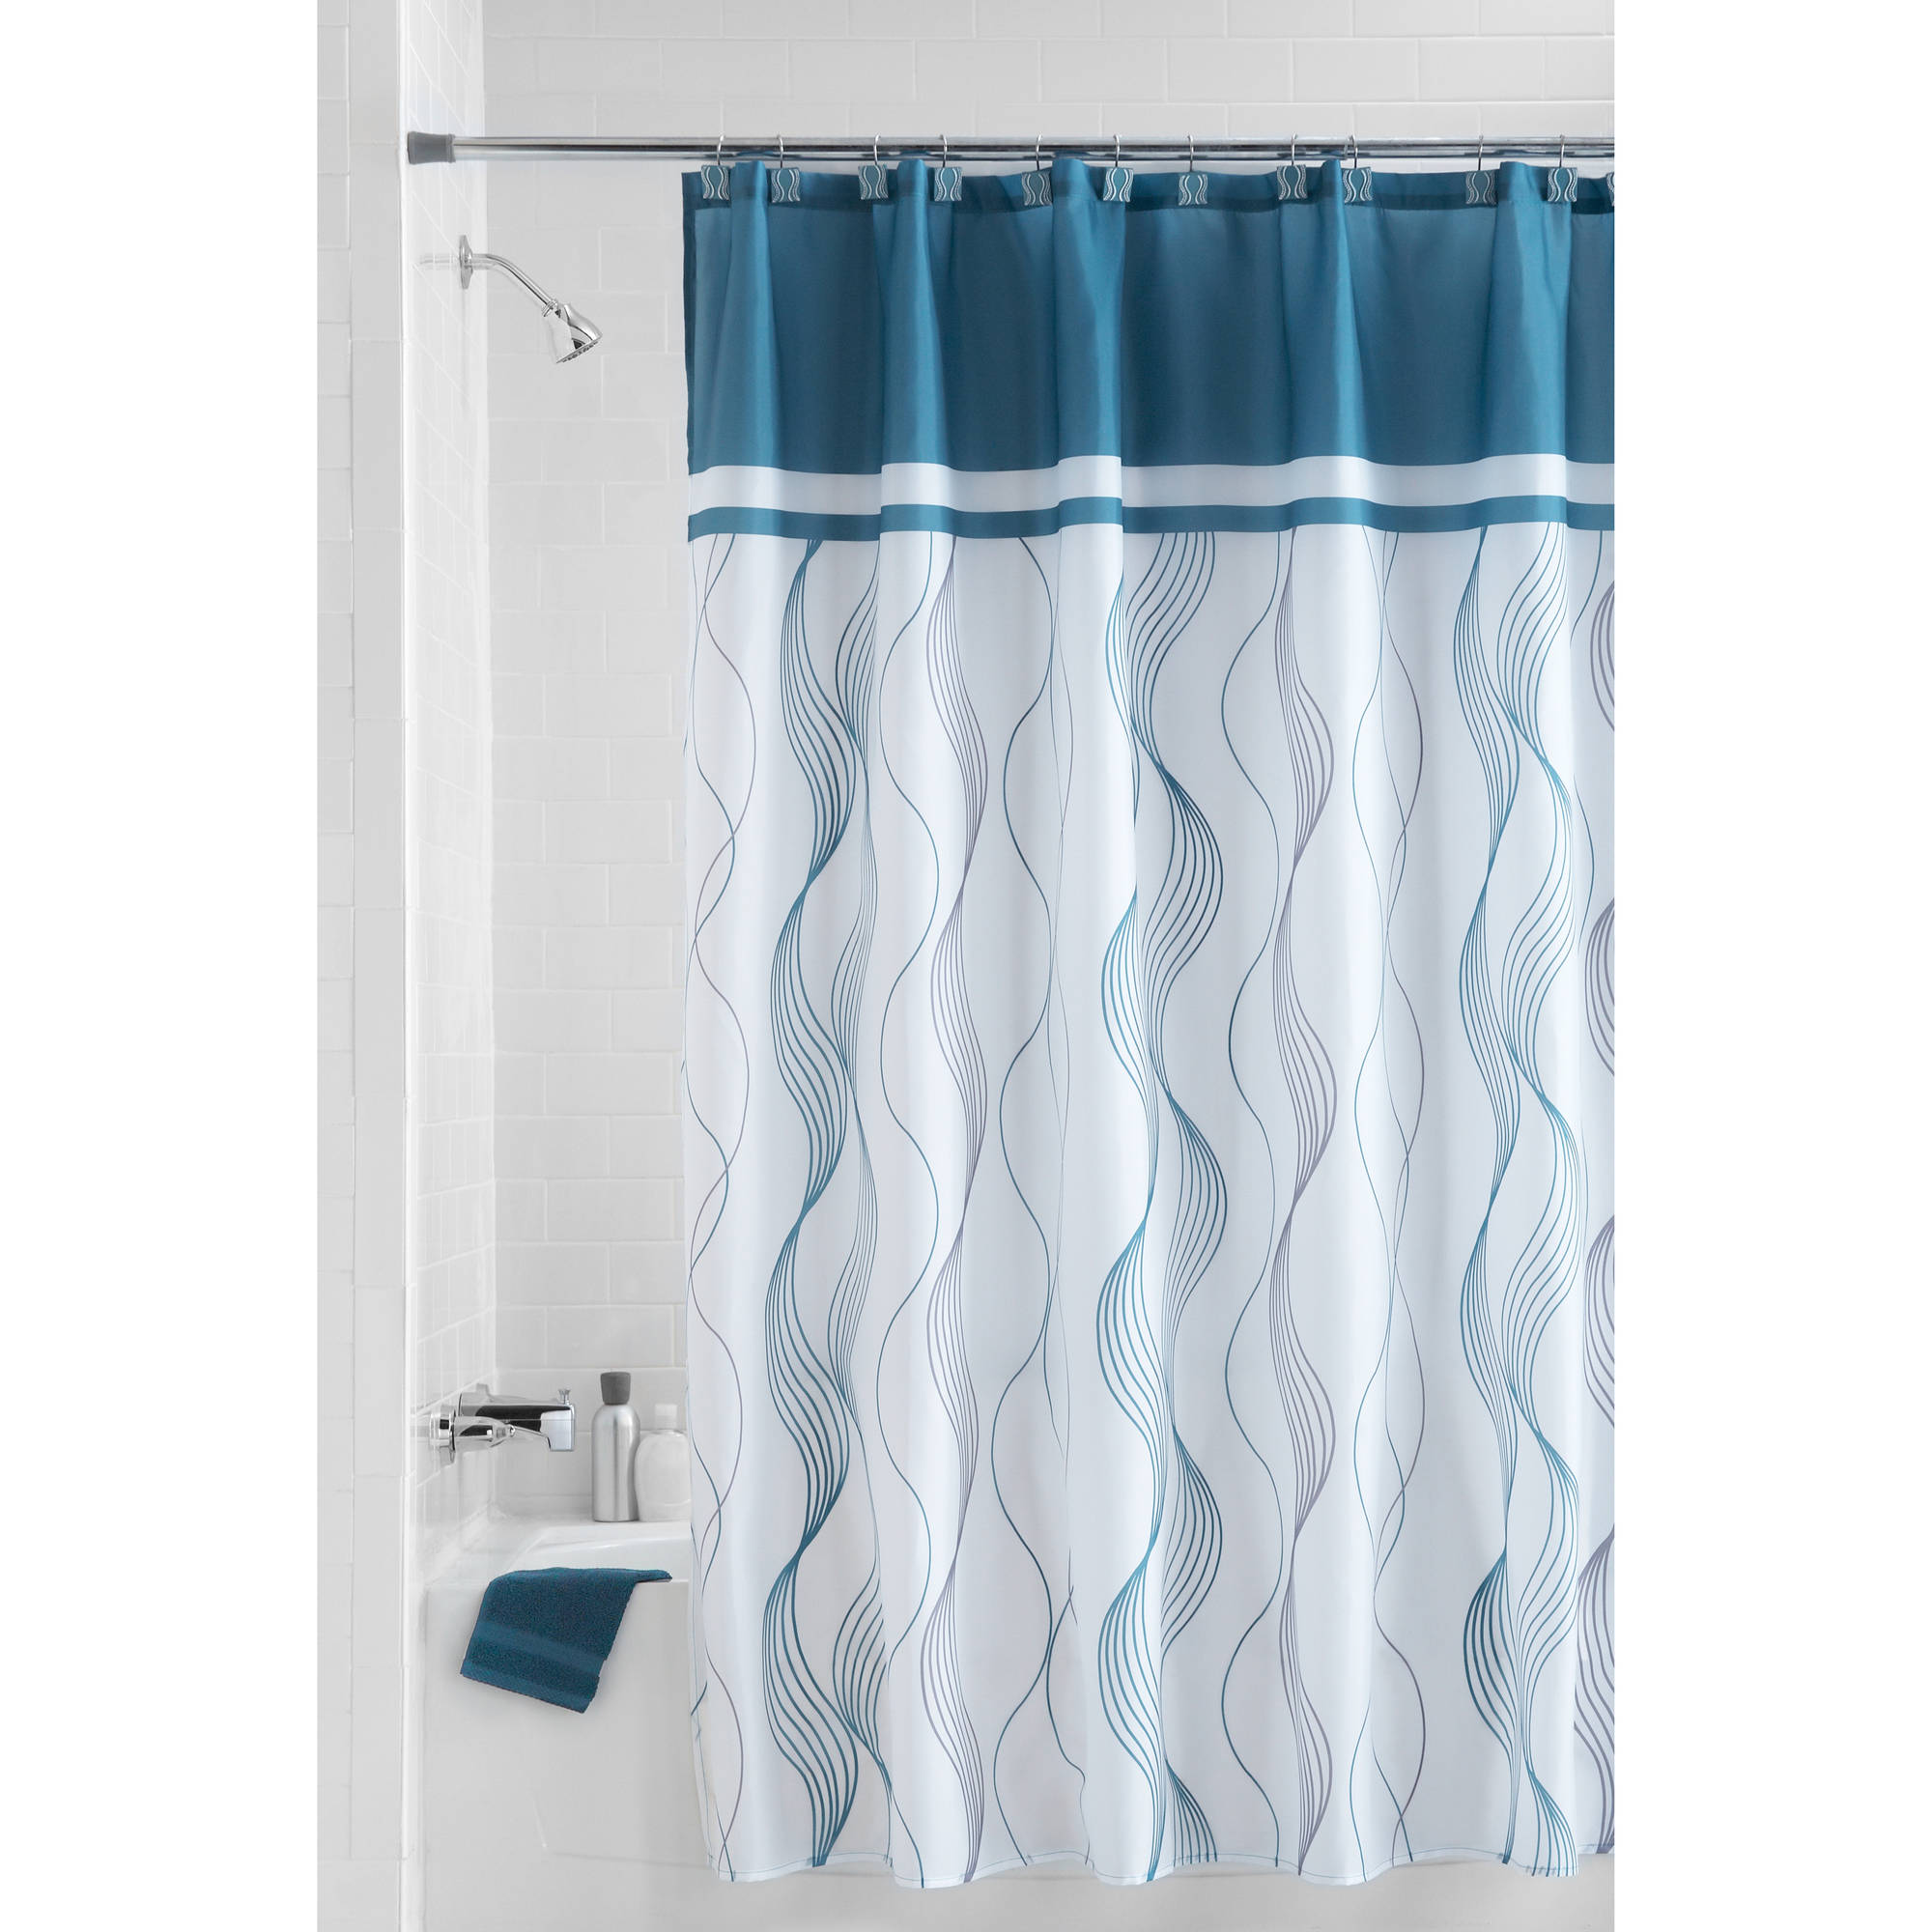 Curtain: 84 Shower Curtain | Ikea Shower Curtain | Shower Curtain Liner